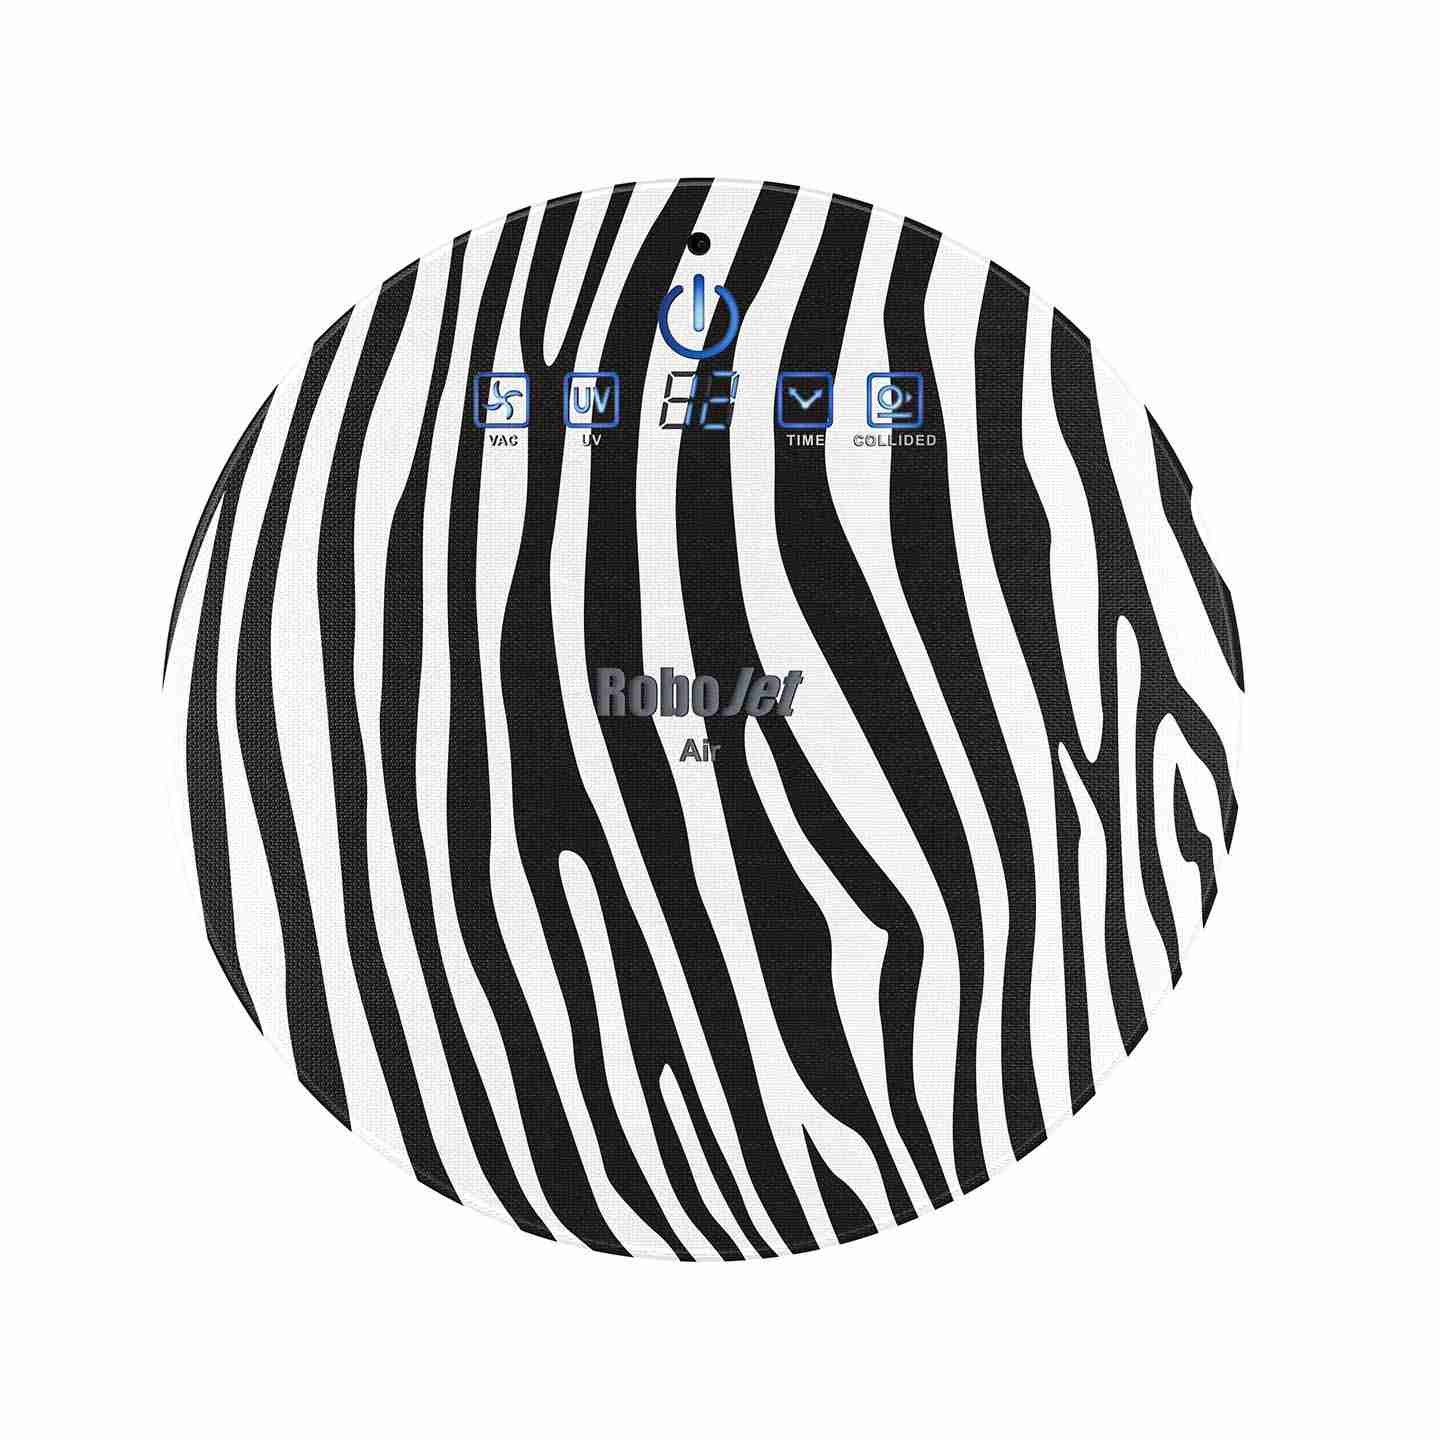 Panel RoboJet Air - Zebra